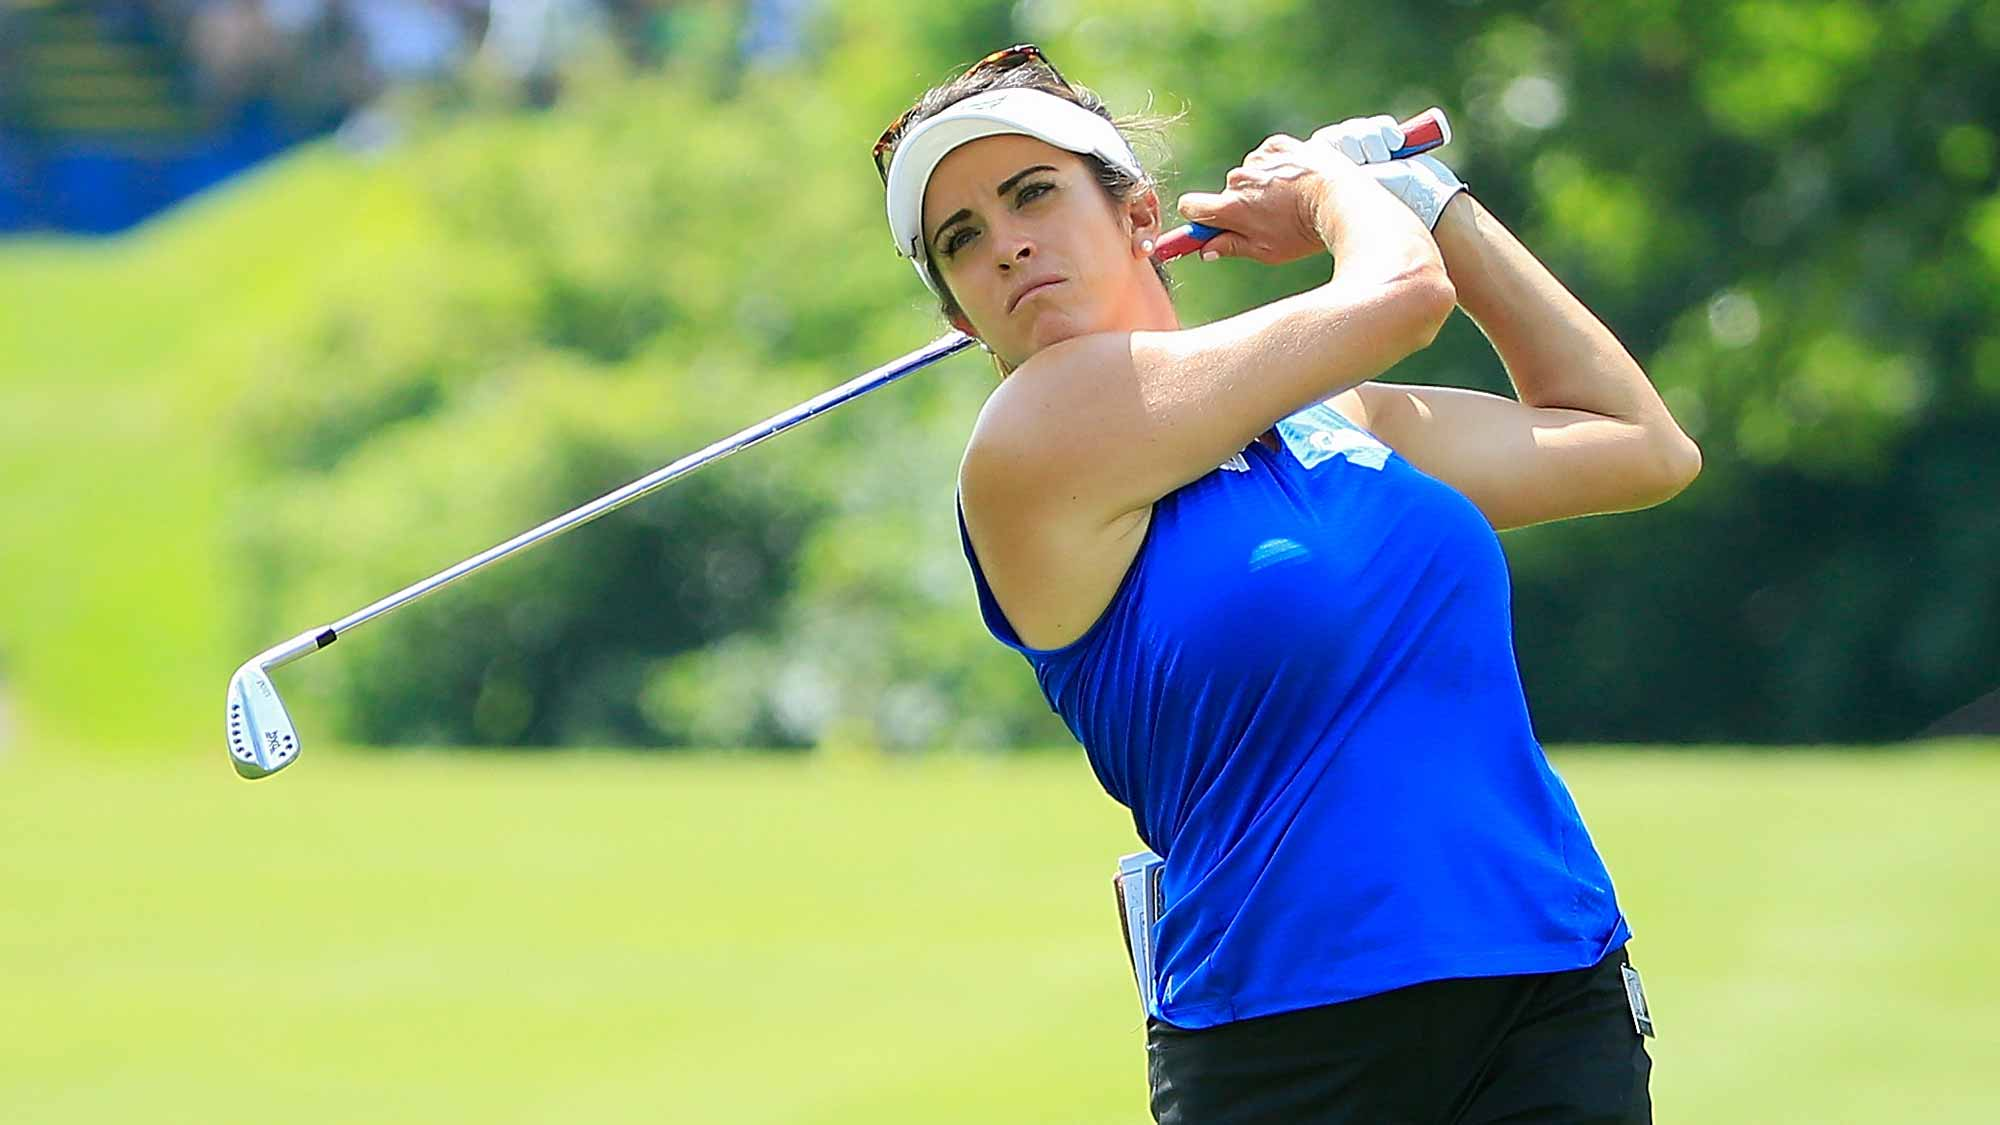 Patience Helps Piller Maintain Lead at Marathon Classic